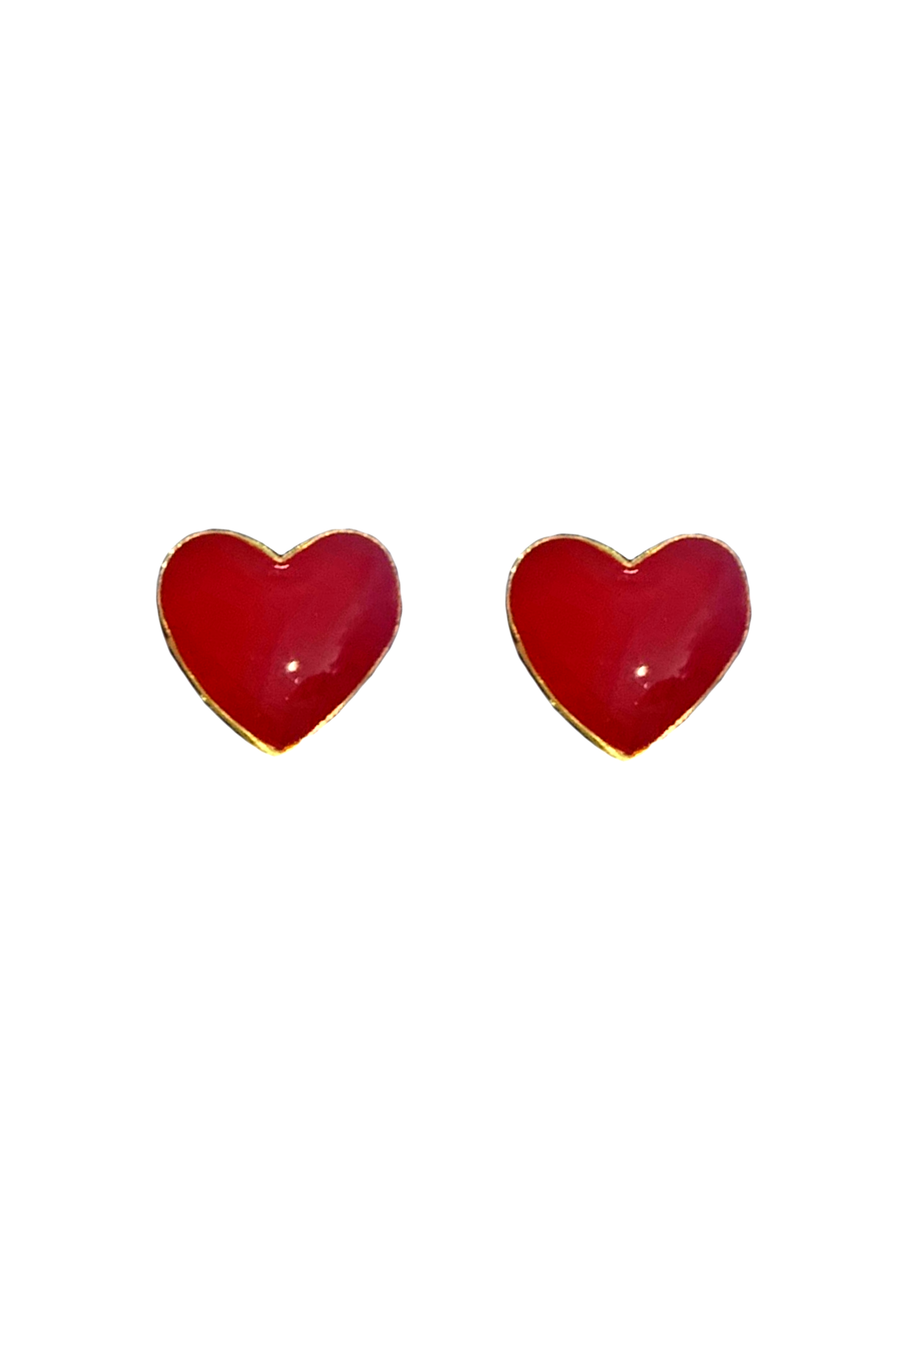 Enamel Heart Earrings - Red